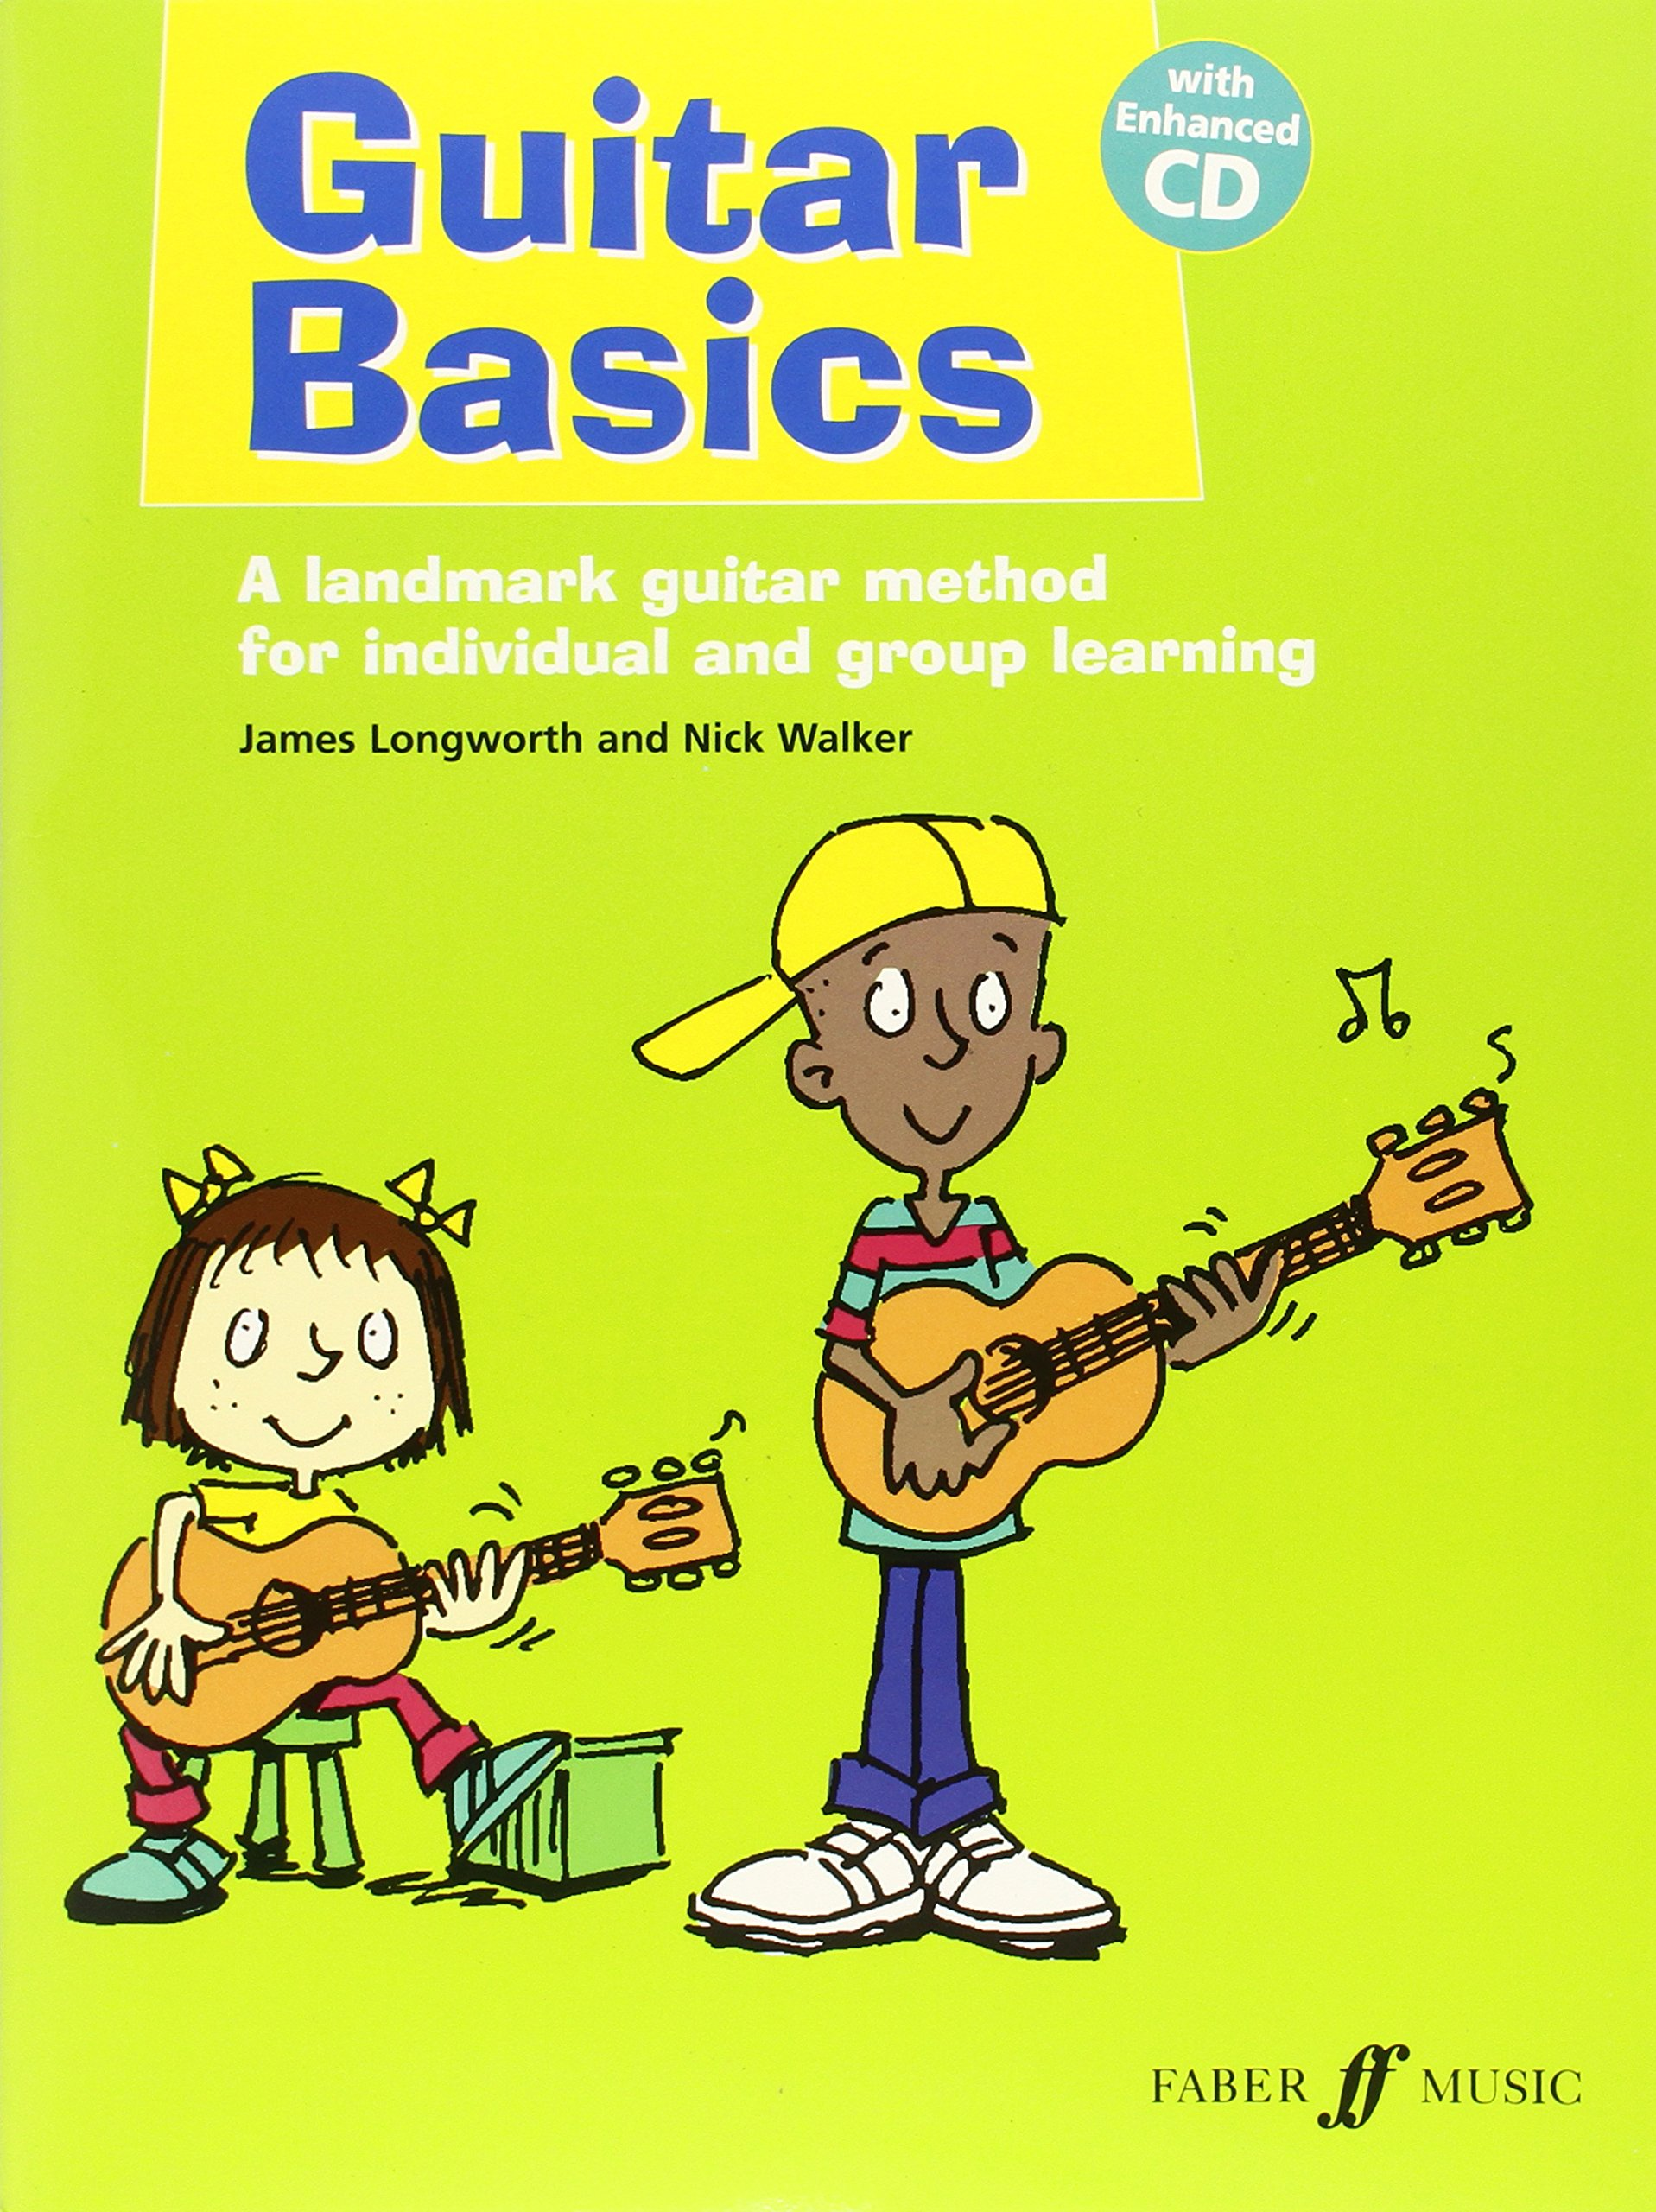 Acoustic Guitar Learning Books Pdf